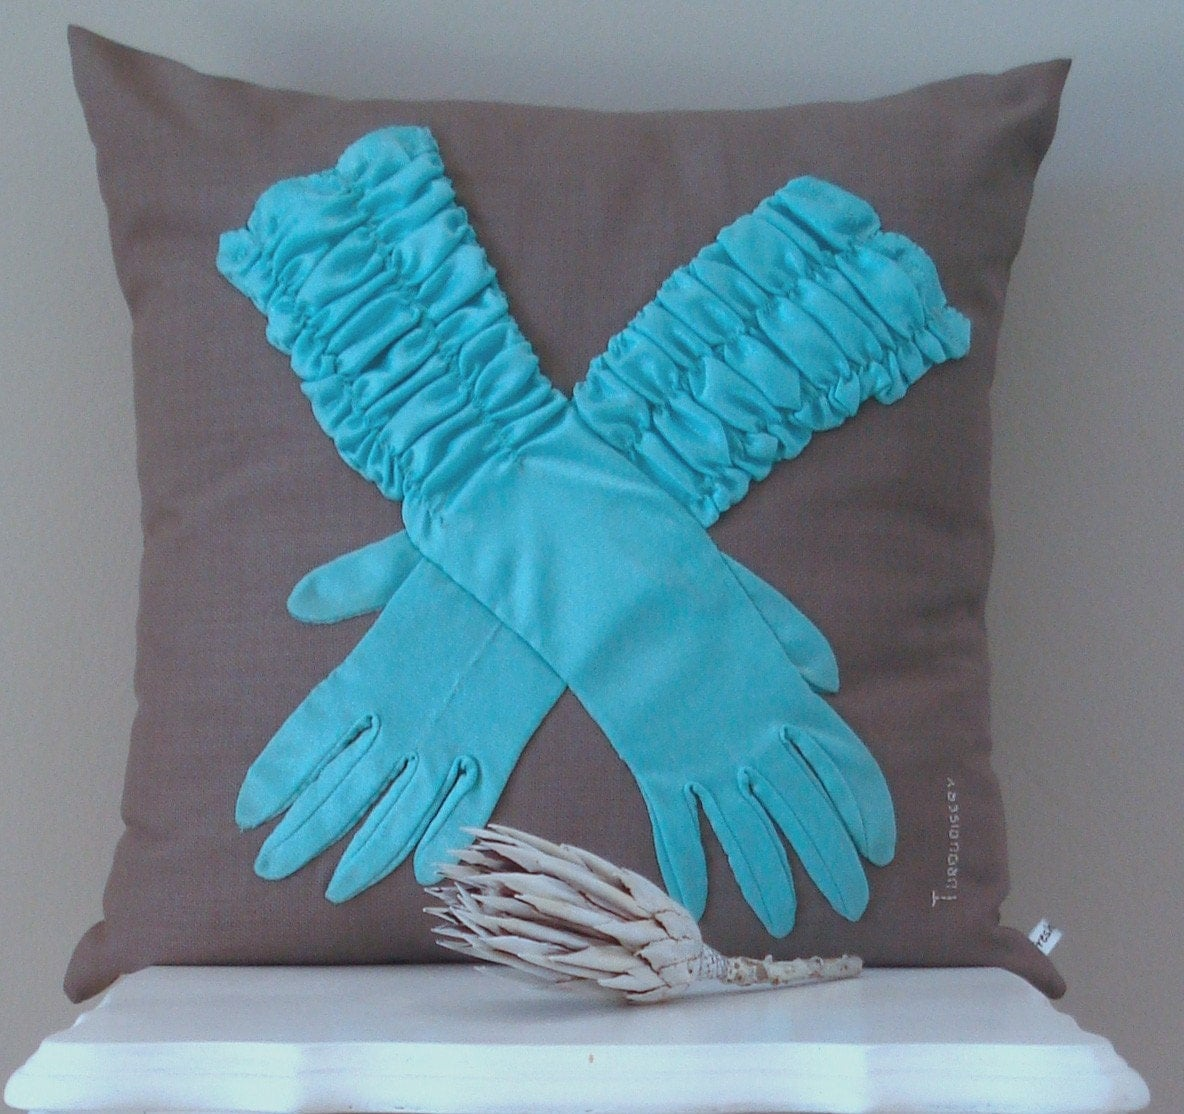 Glove Cushion Cover - Turquoisery